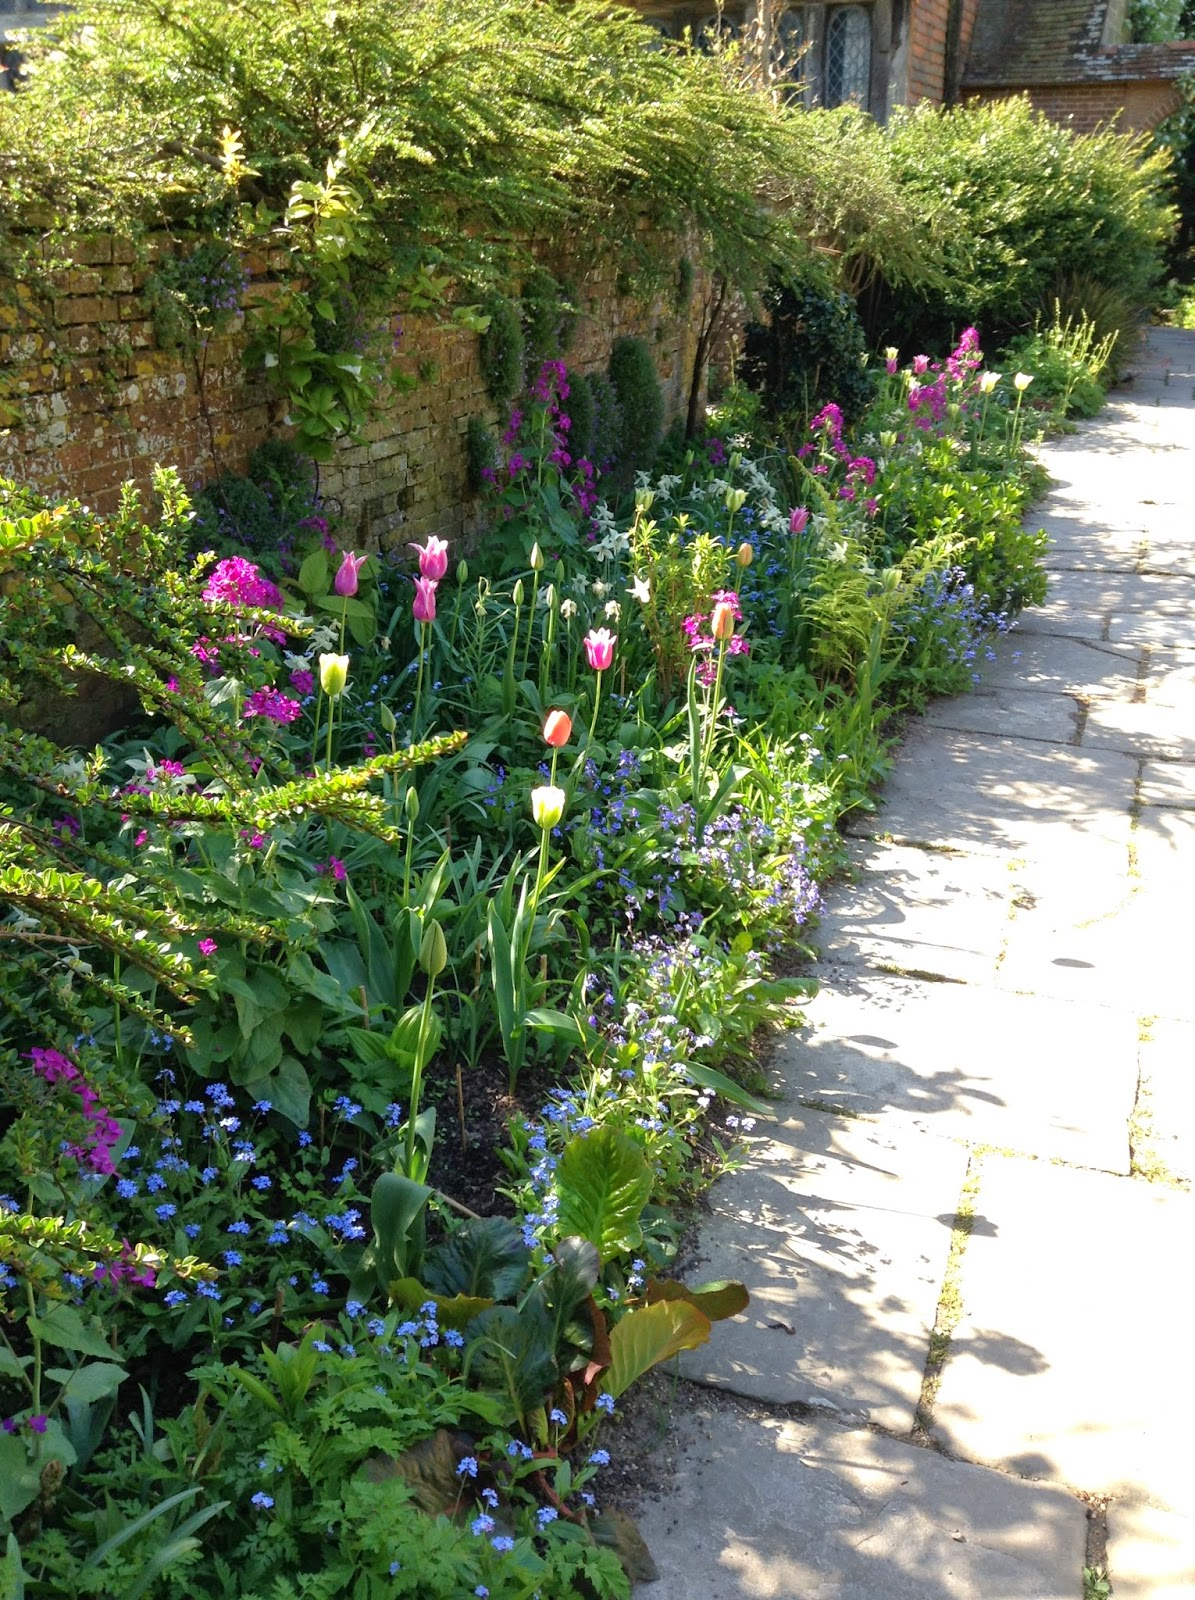 Wall Garden at Great Dixter - Photo by Noemi Mercurelli